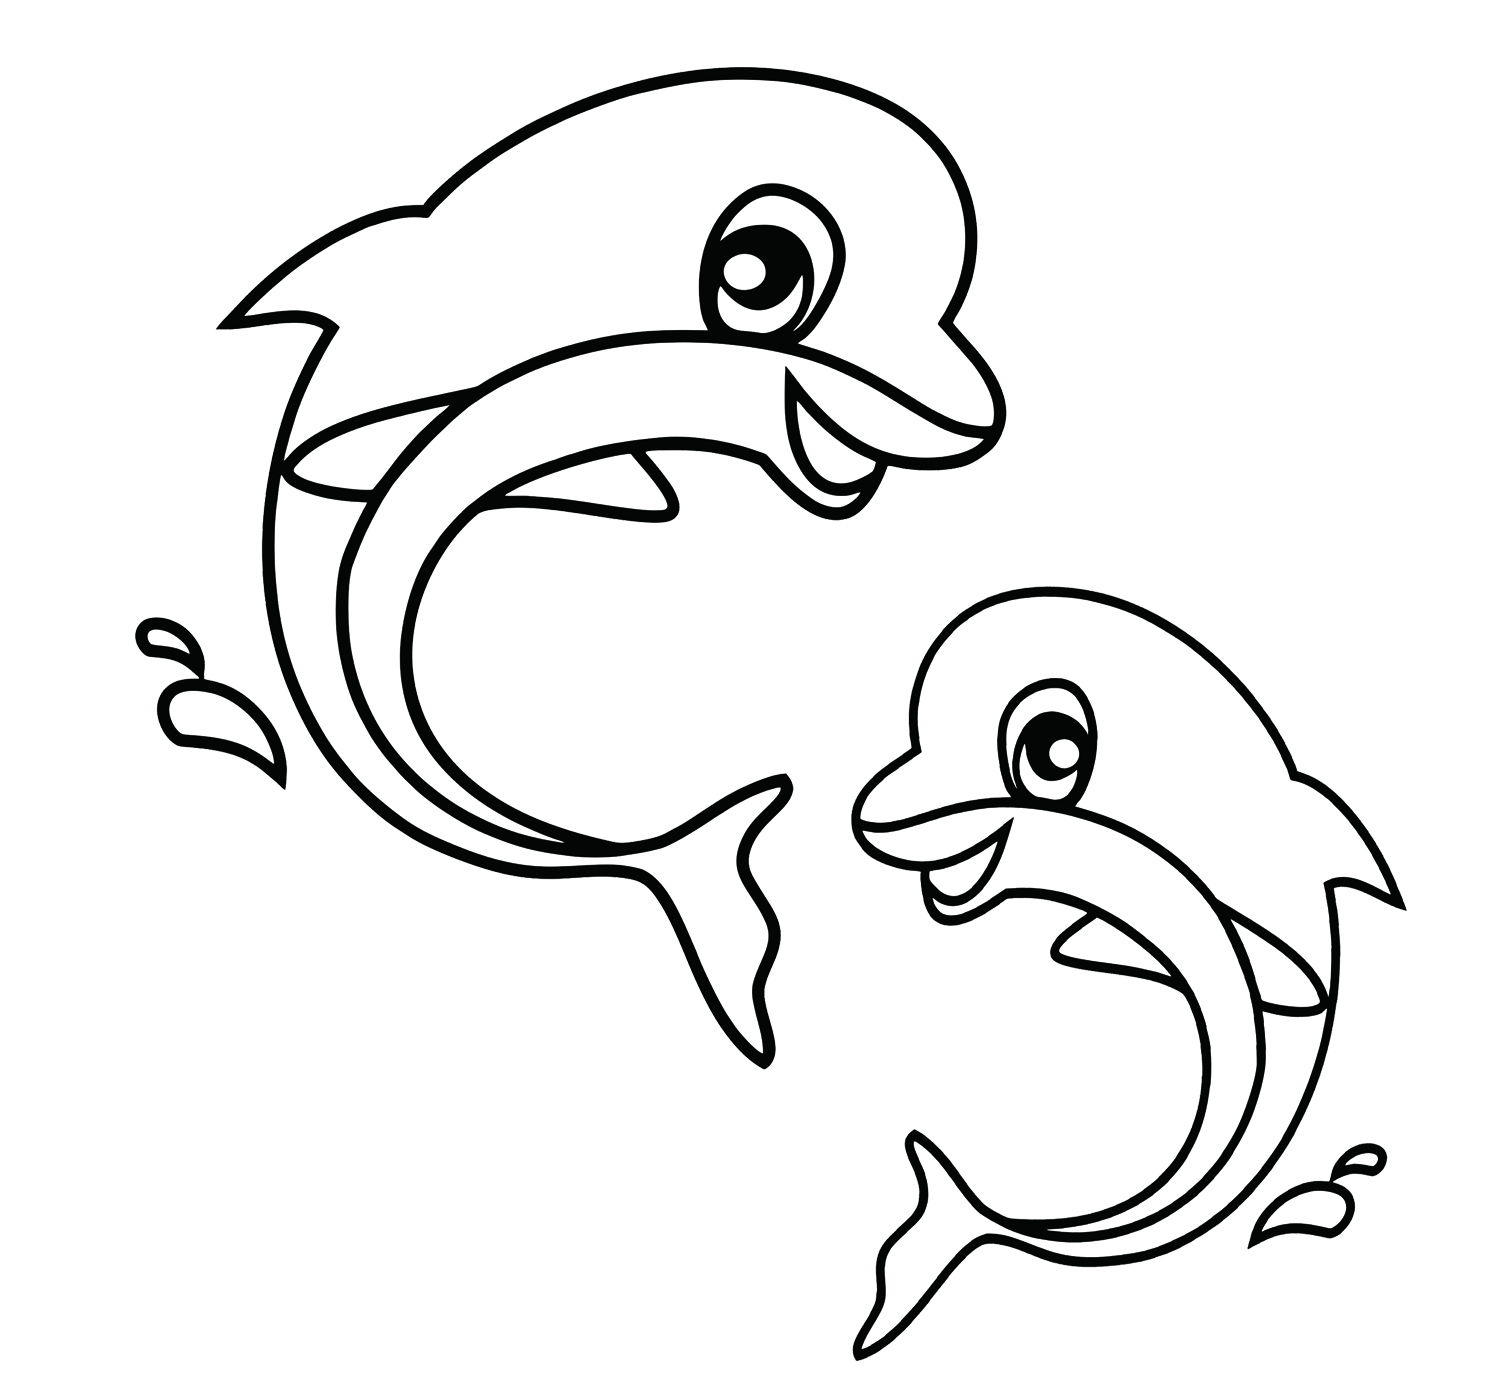 1500x1374 Animal Coloring Pages 10